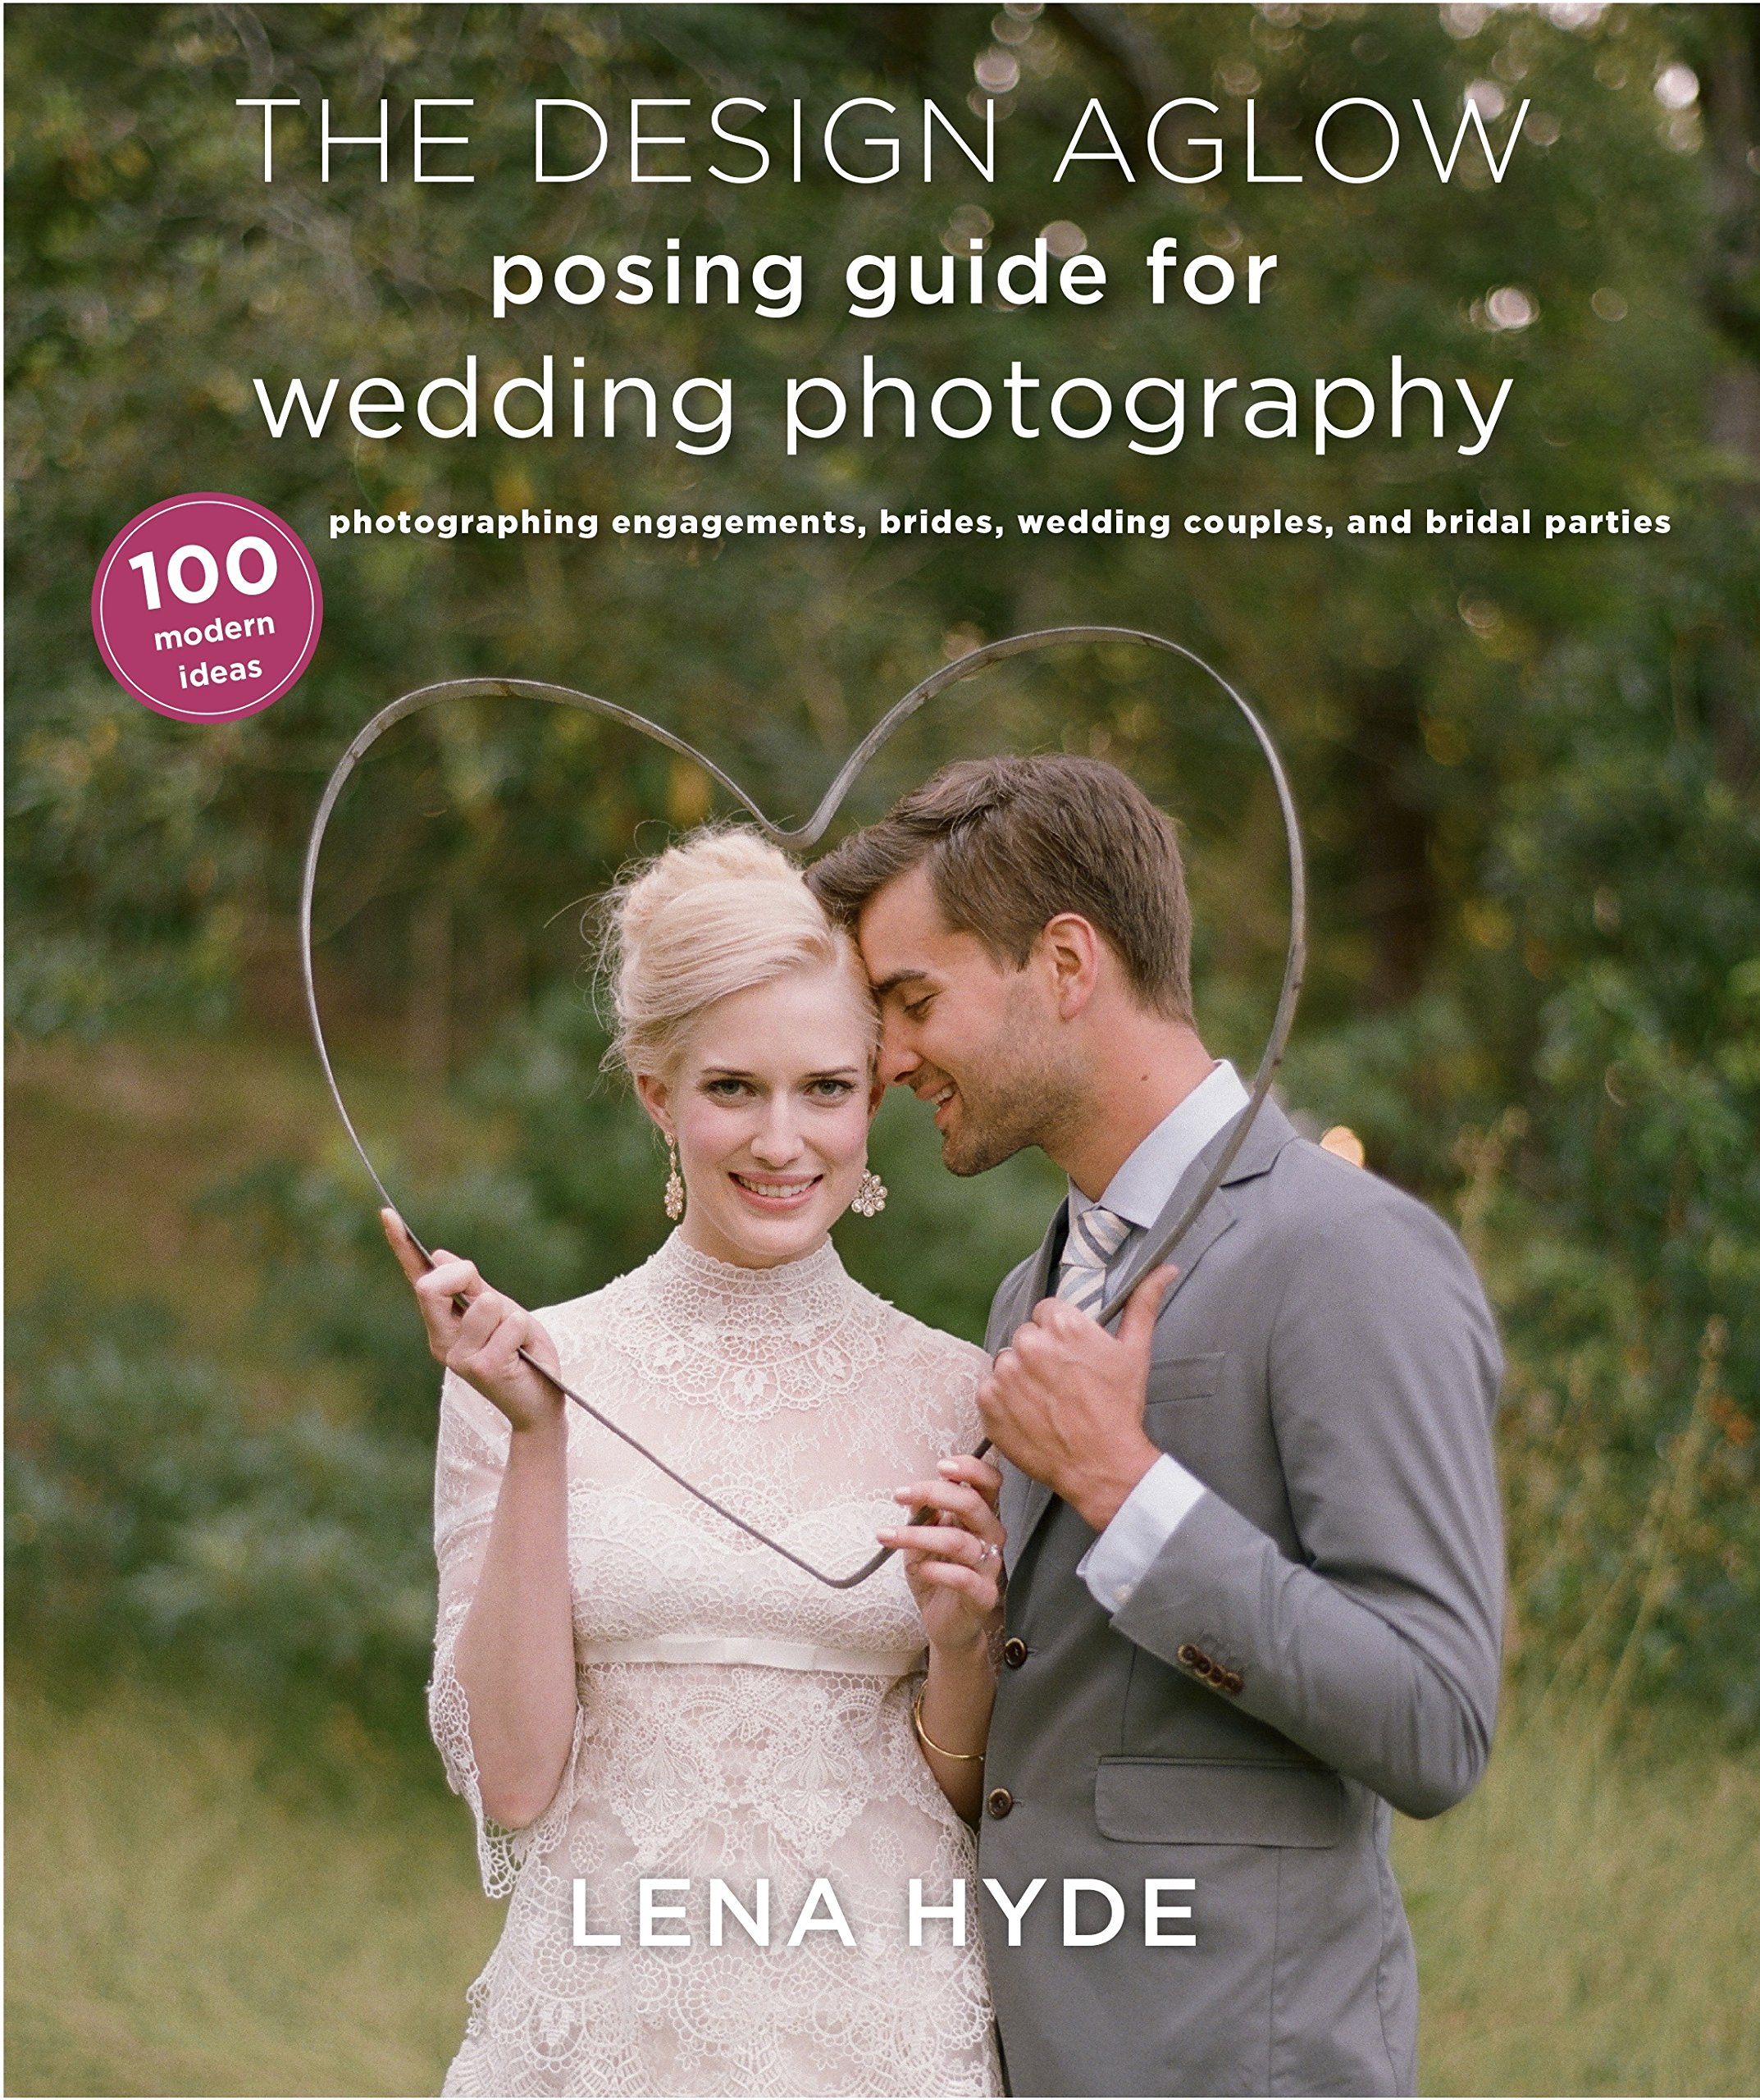 The Design Aglow Posing Guide For Wedding Photography 100 Modern Ideas Photographing Engagements Brides Couples And Parties Lena